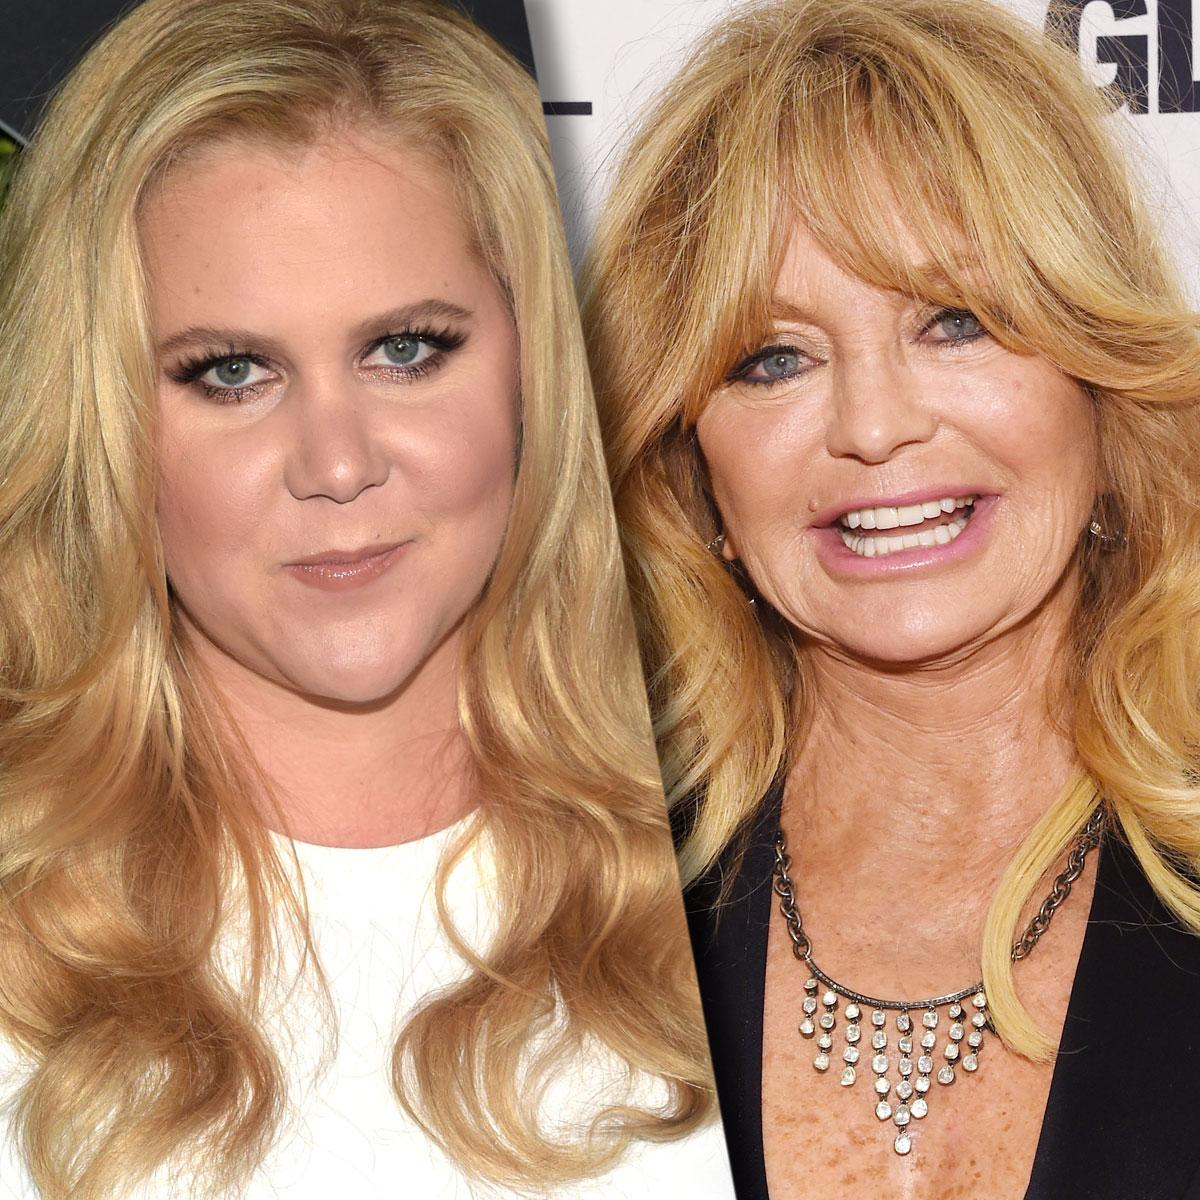 Goldie Hawn Might Be Coming Out of Retirement to Play Amy Schumer's Mom in Kidnapping Comedy